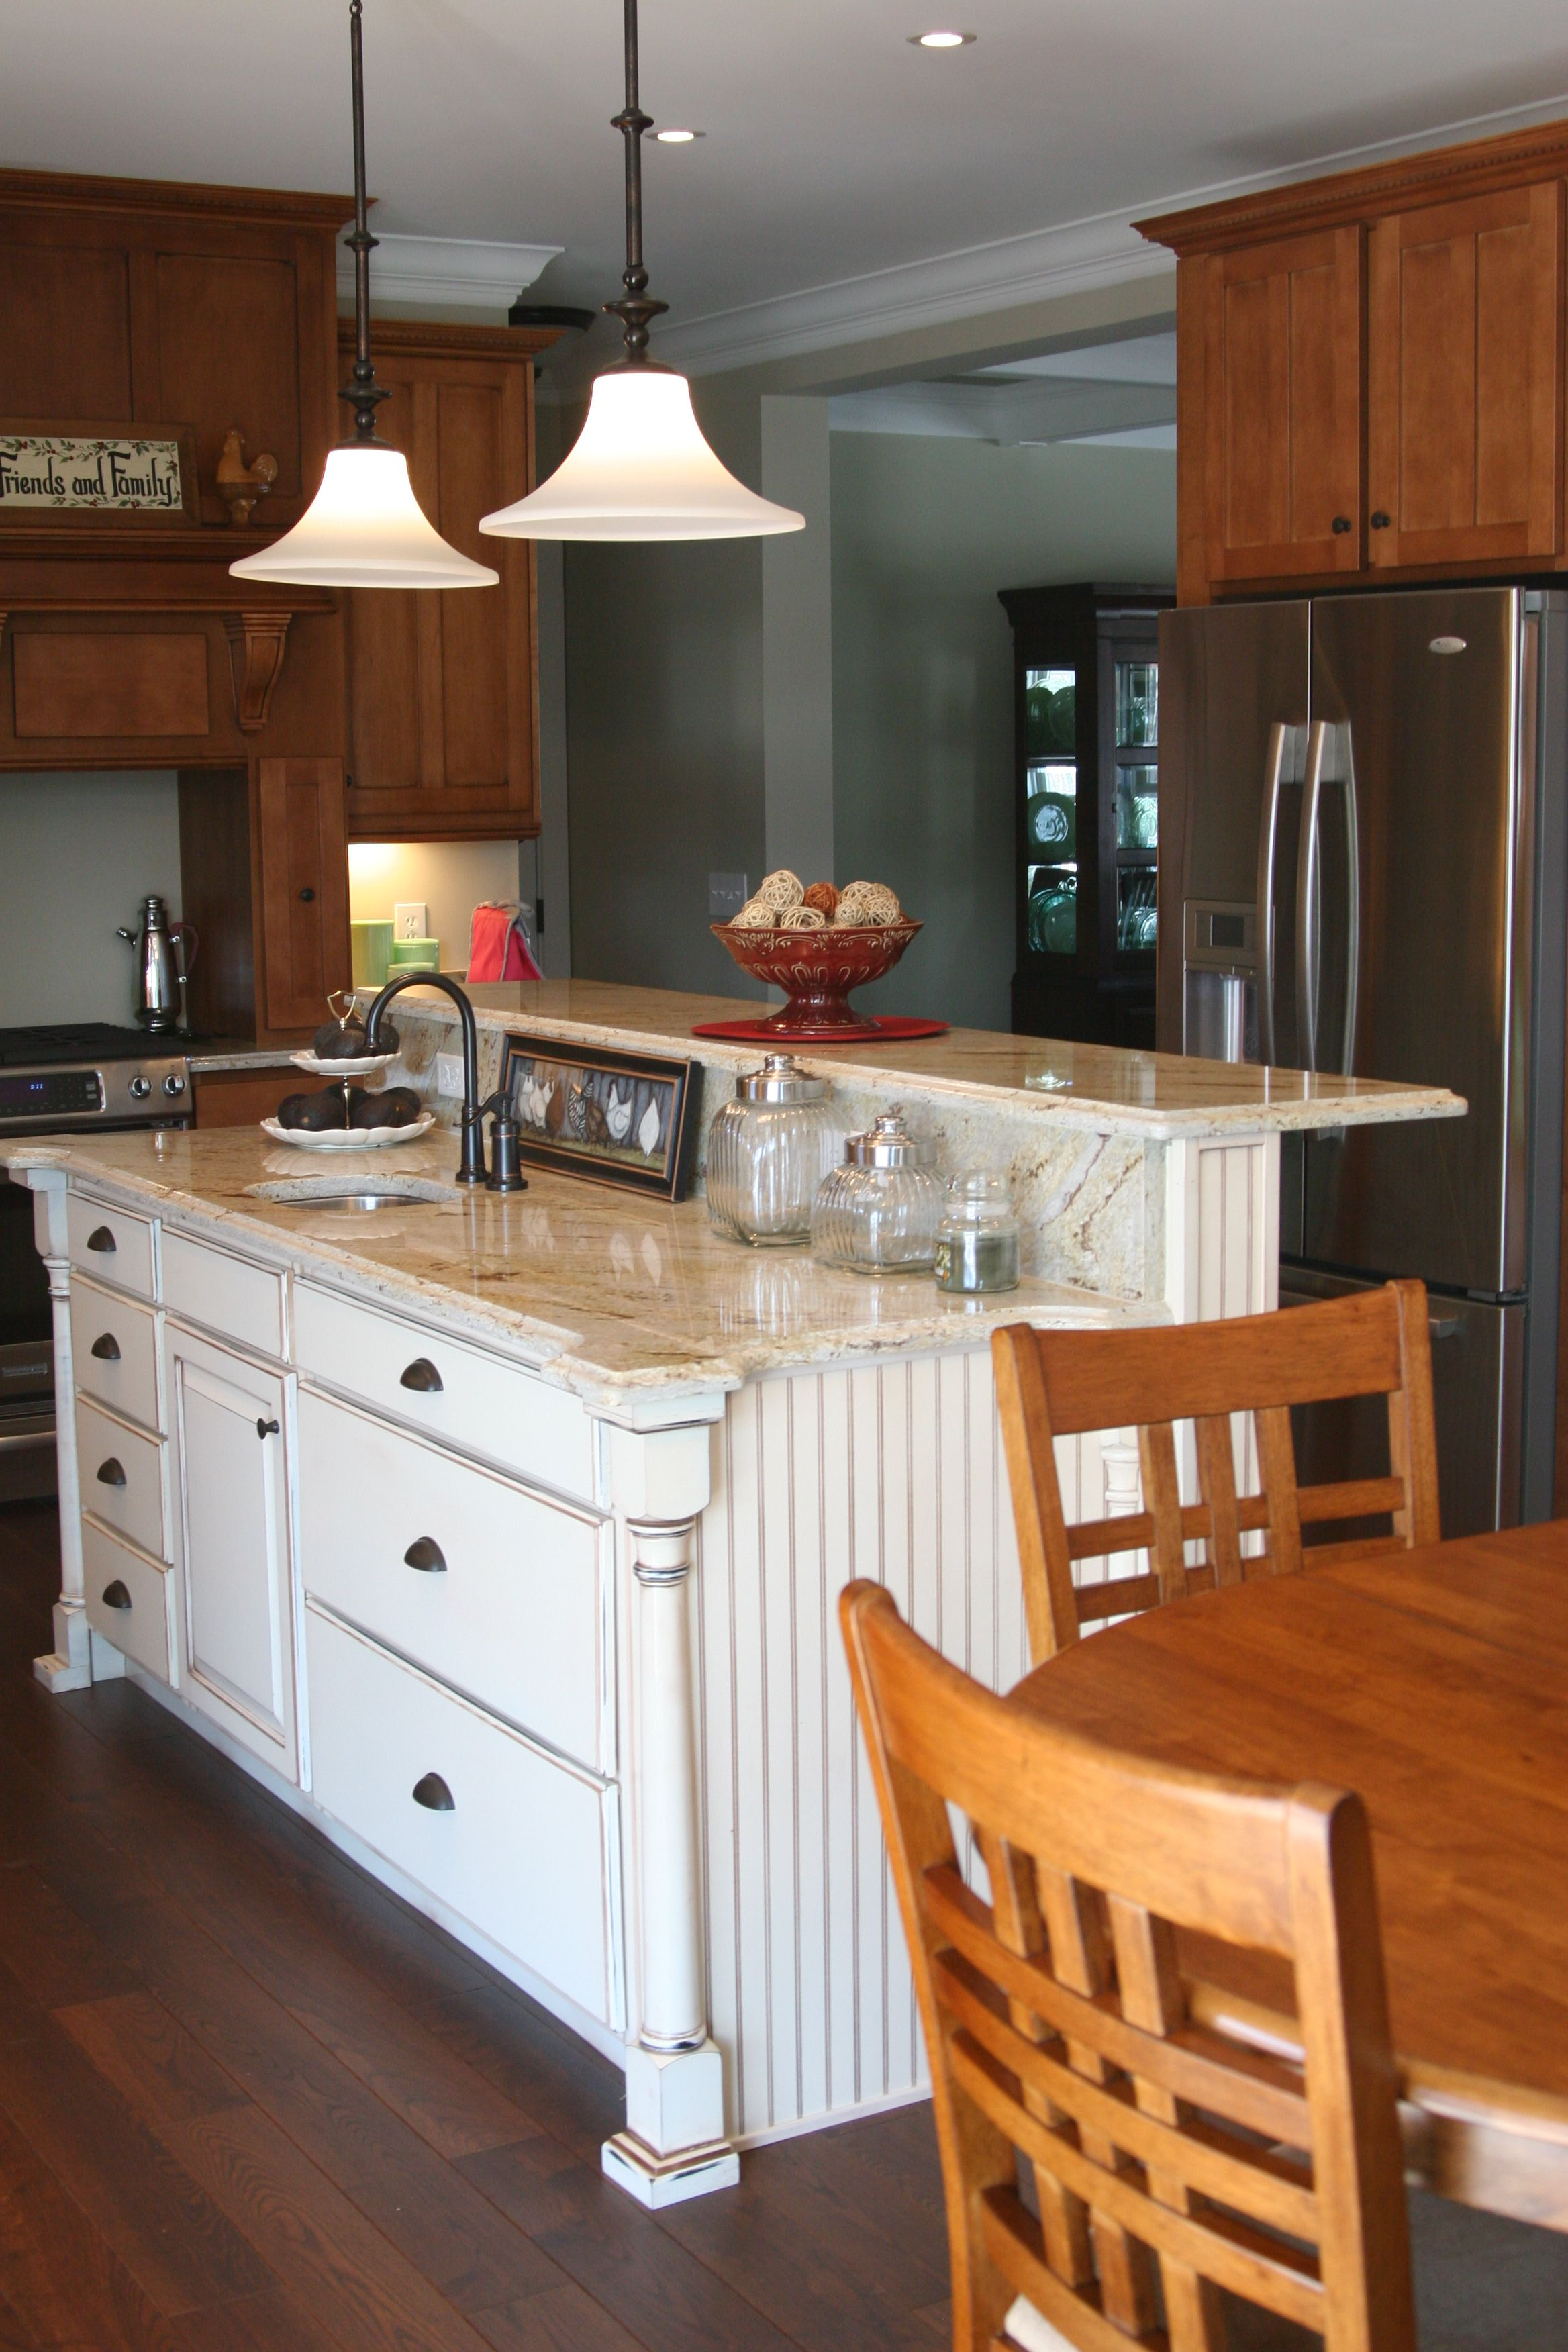 Beautiful Kitchen Accent Island W Raised Bar Tell Us What You